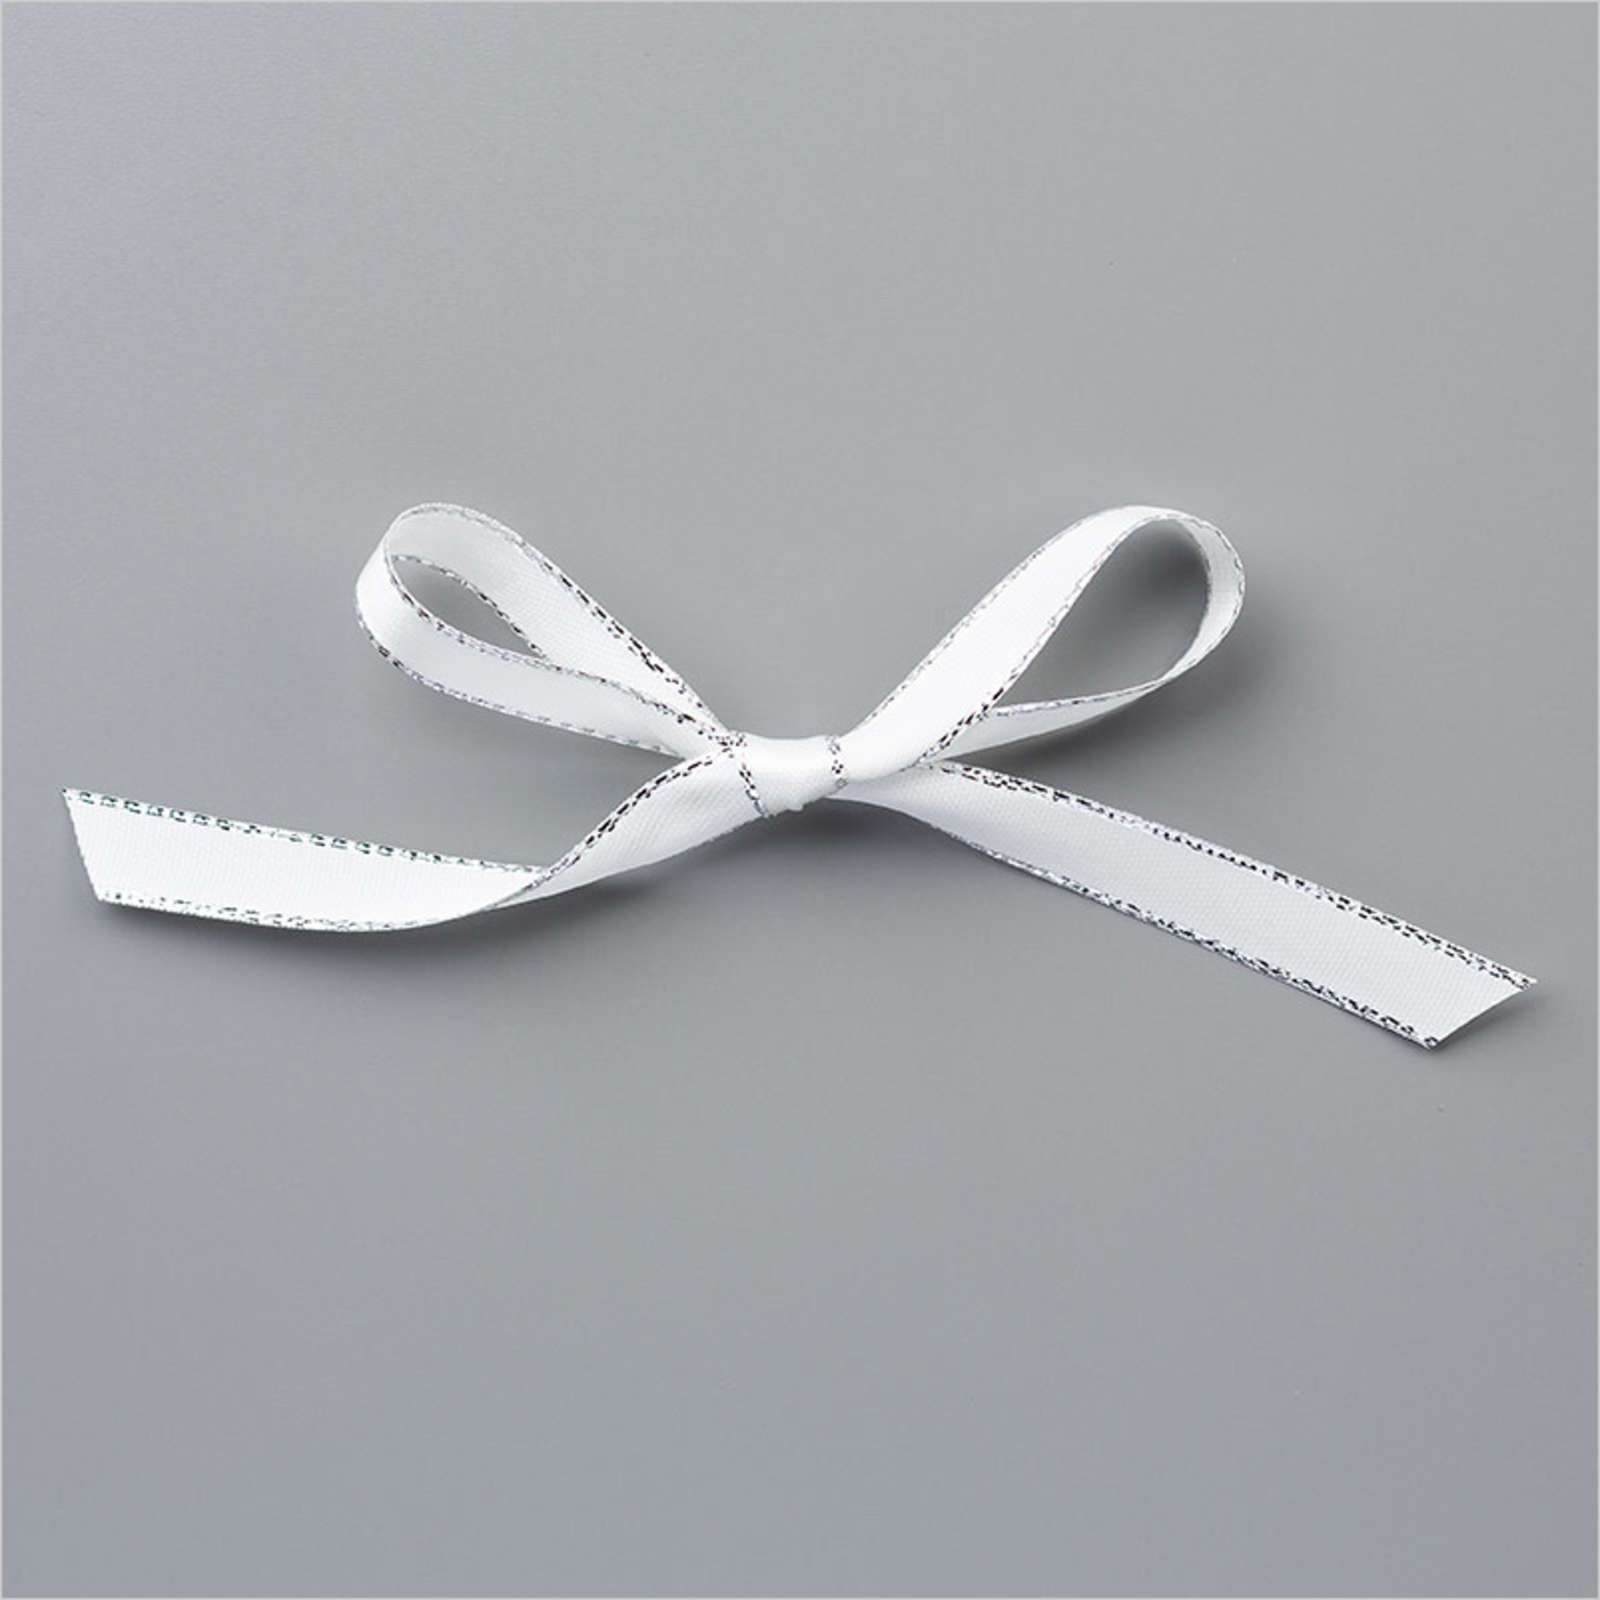 "SILVER 3/8"" (1 CM) METALLIC EDGE RIBBON"